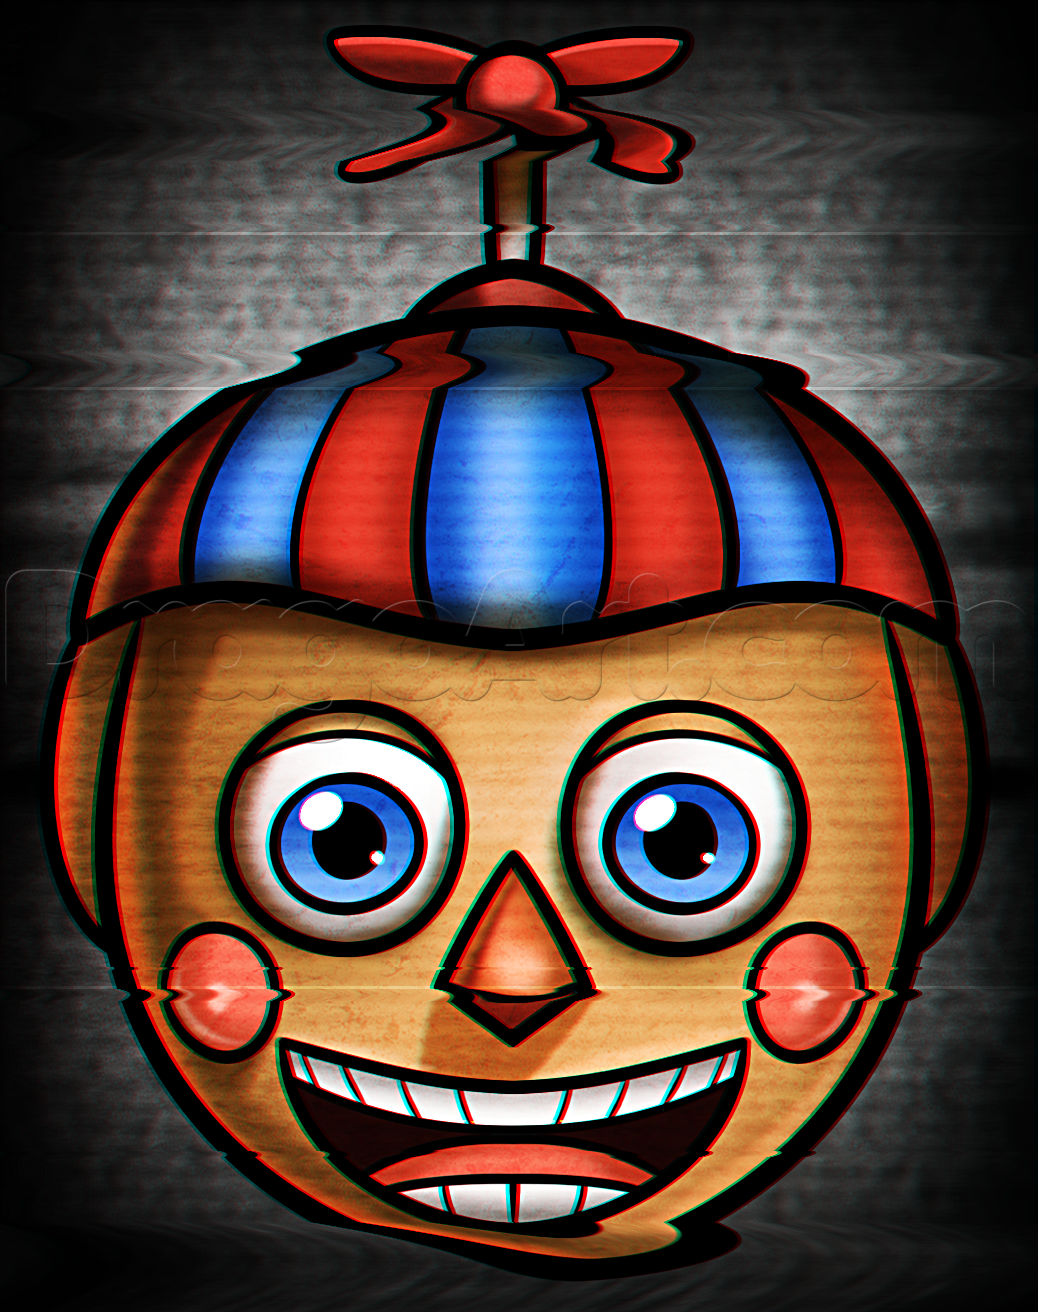 How To Draw Bb Easy Balloon Boy Step By Step Video Game Characters Pop Culture Free Online Drawing Tutor Five Nights At Freddy S Fnaf Crafts Fnaf Drawings